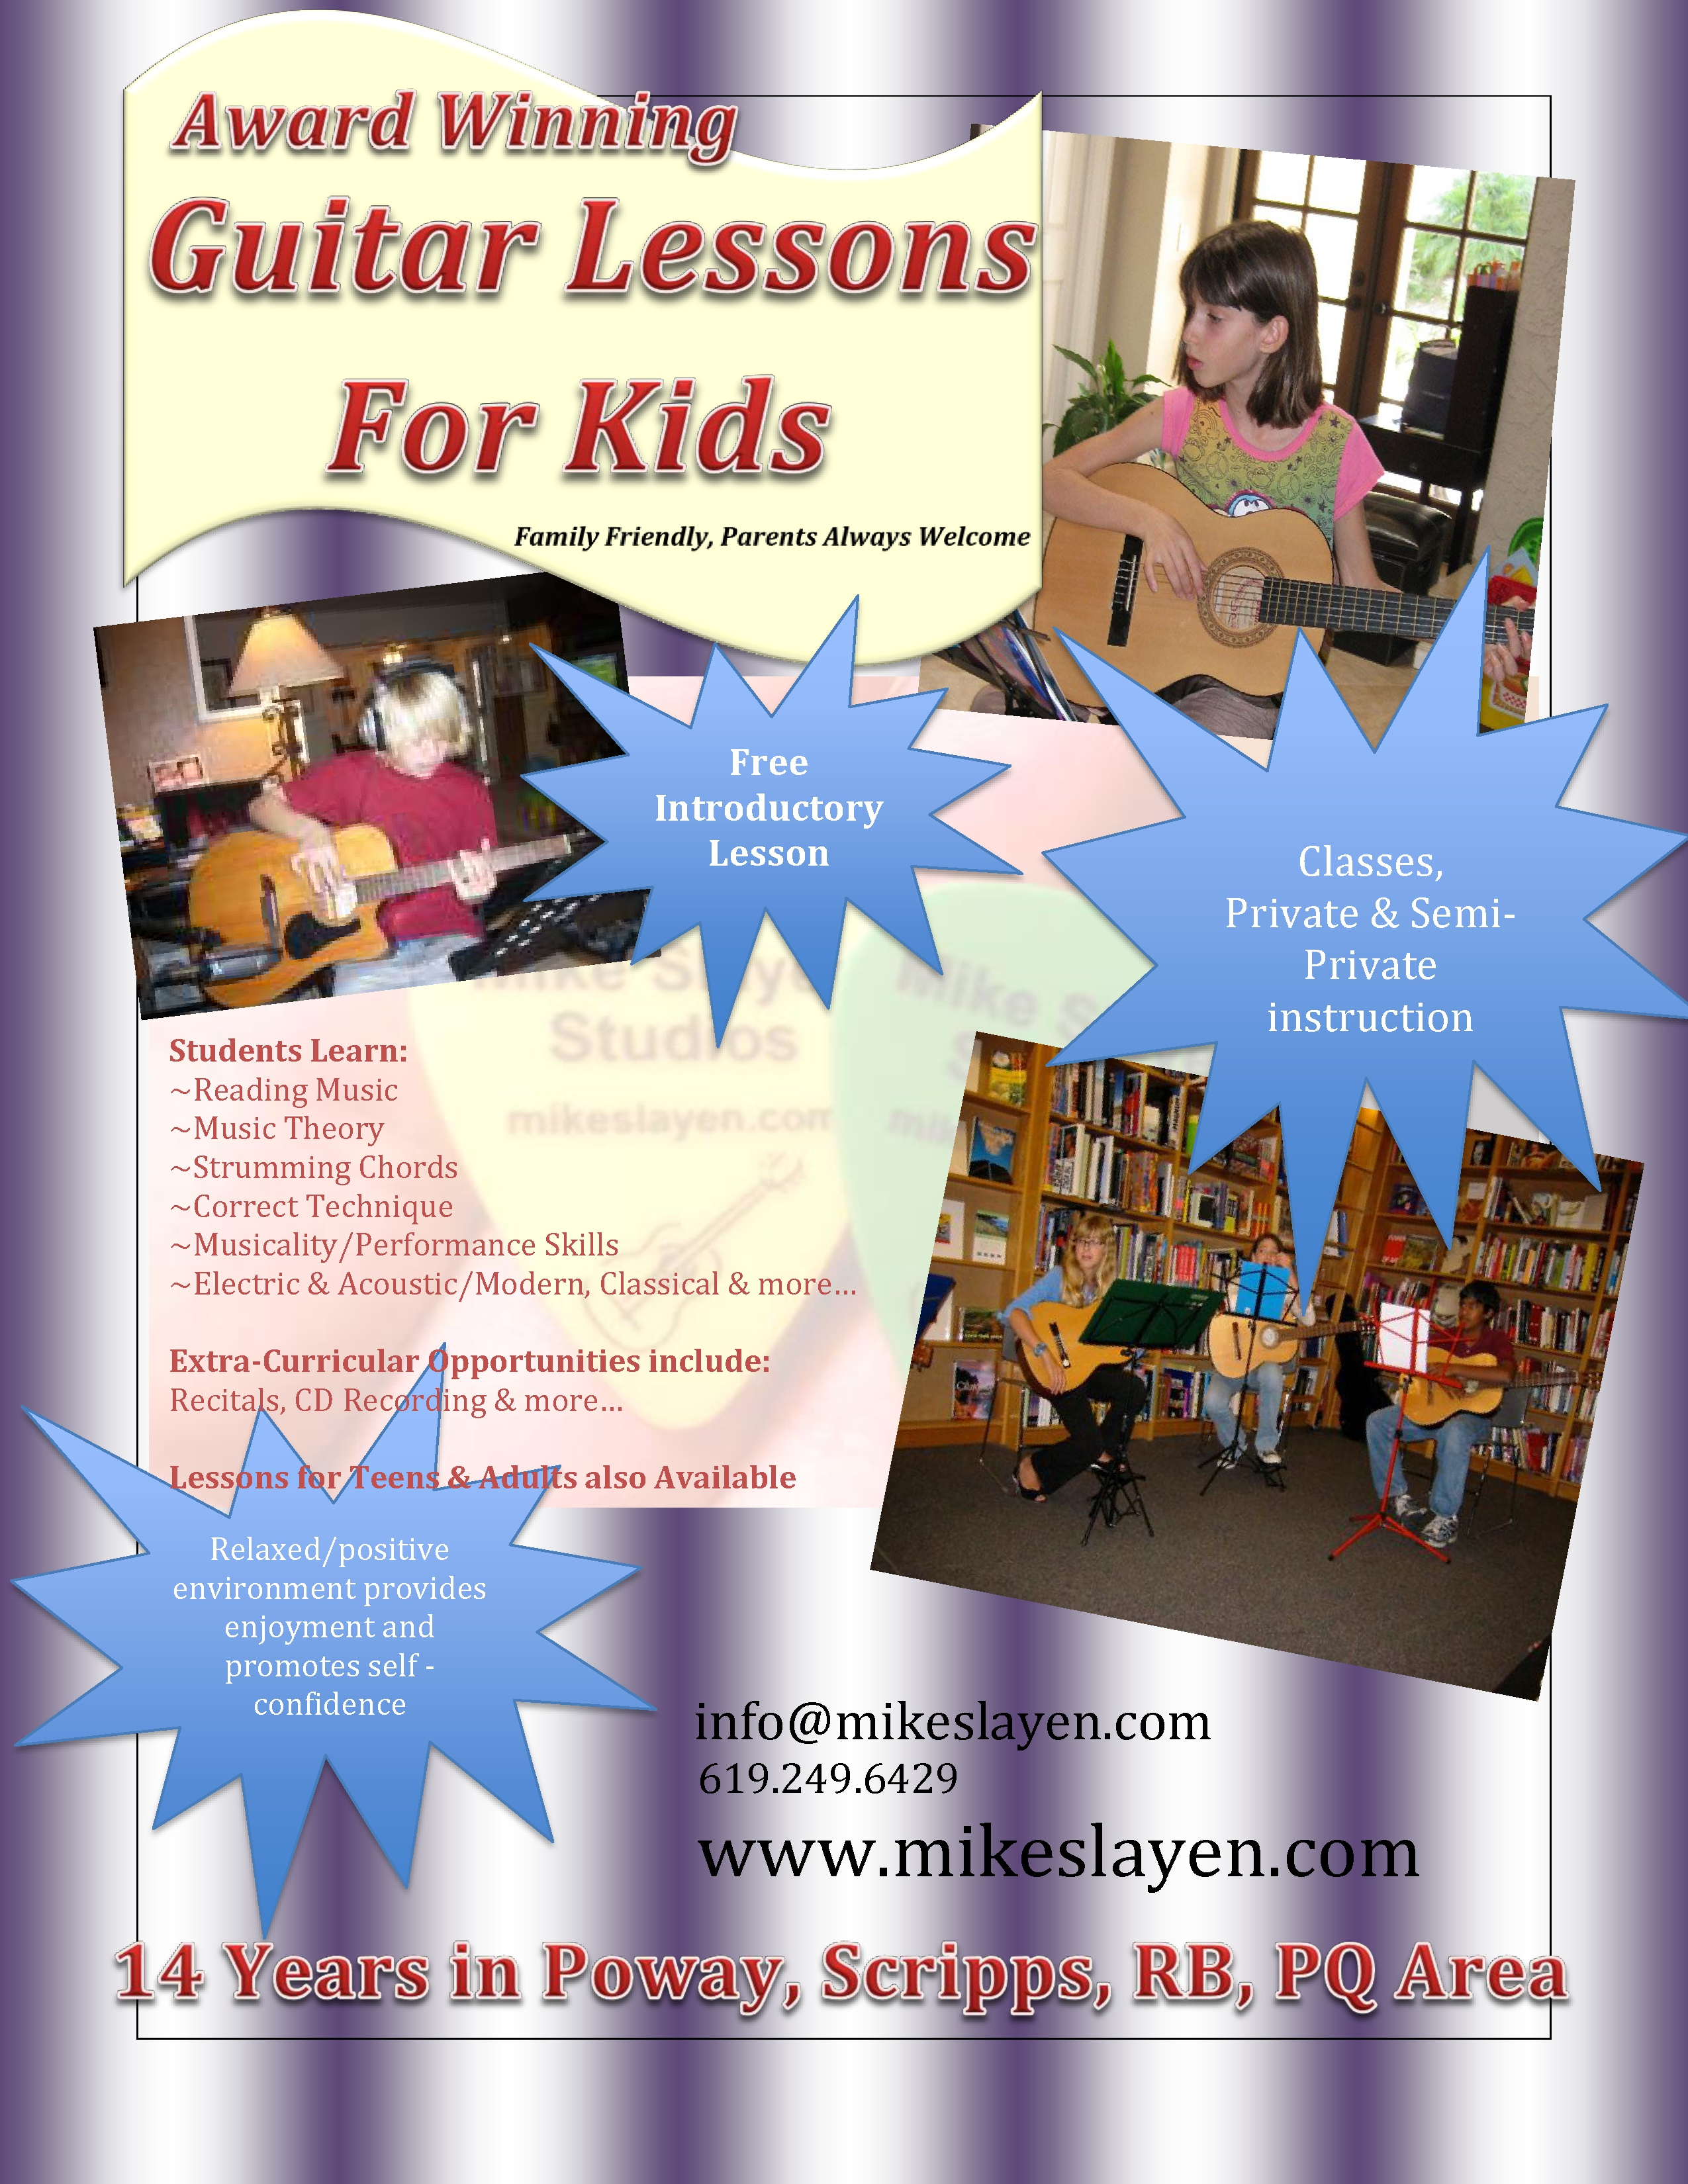 Guitar Lessons For Kids Poway Scripps RB PQ New Brochures